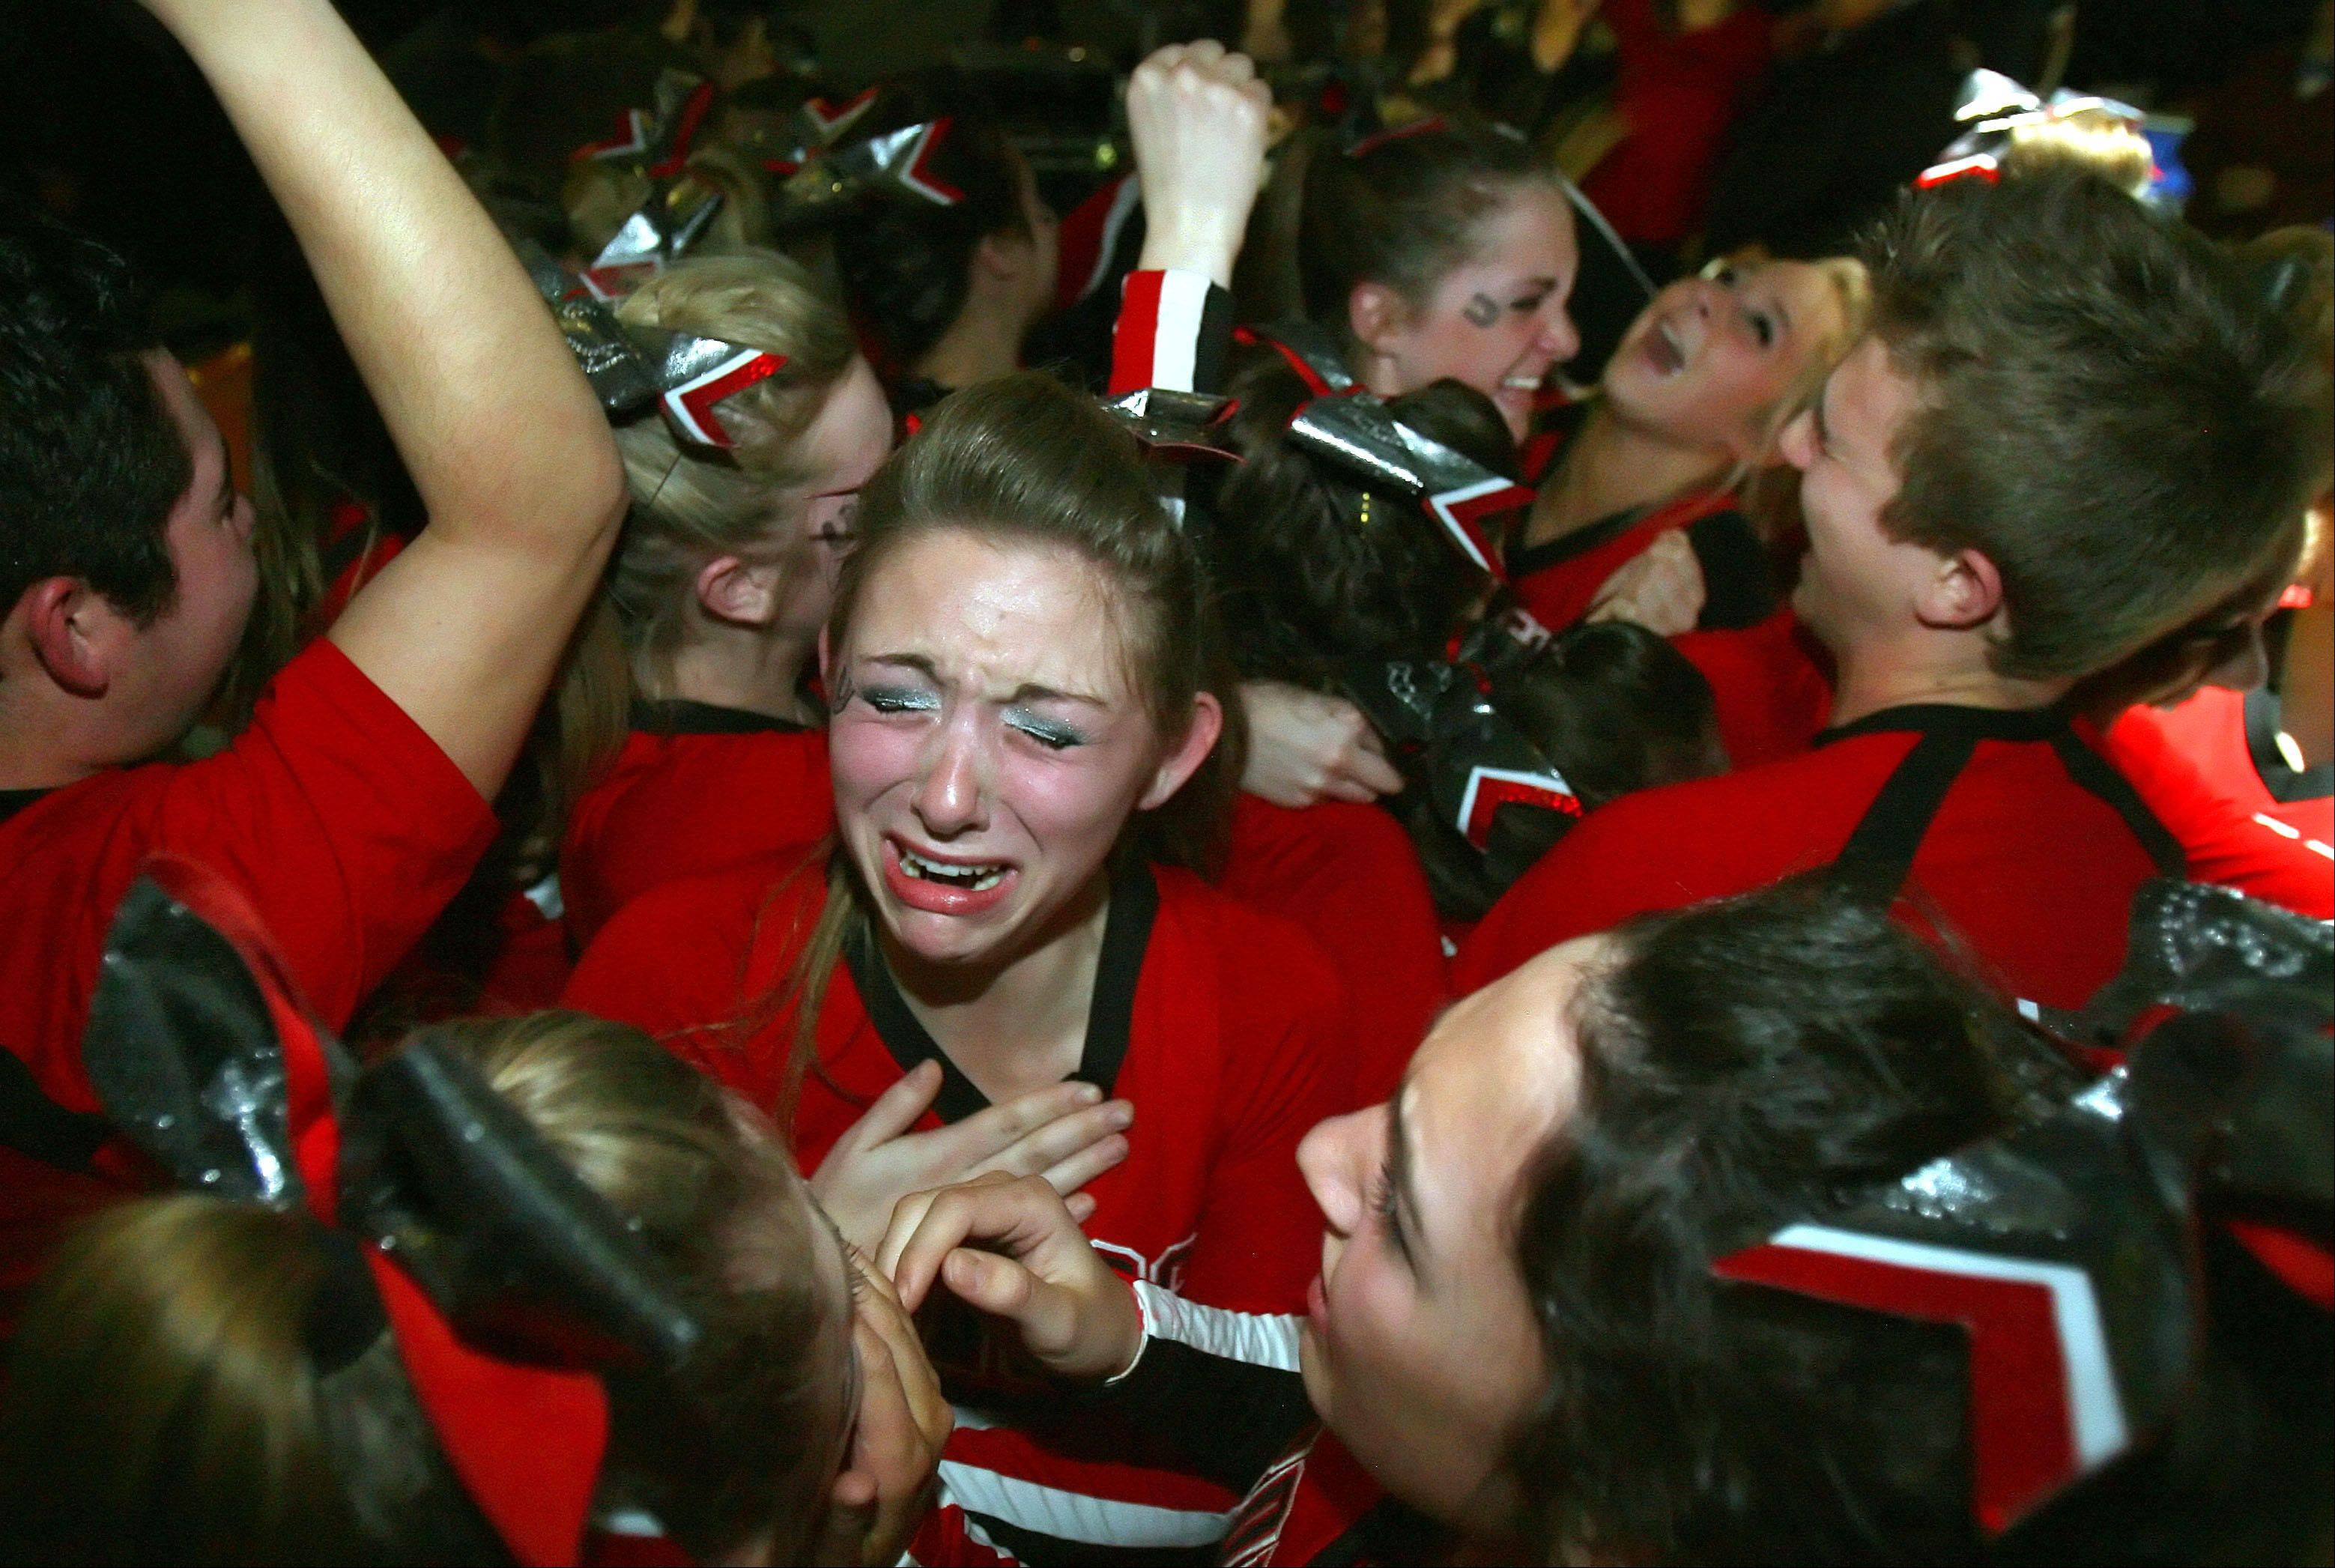 Barrington High School's large co-ed team celebrate after winning 2nd place in the IHSA Competitive Cheerleading finals in Bloomington.